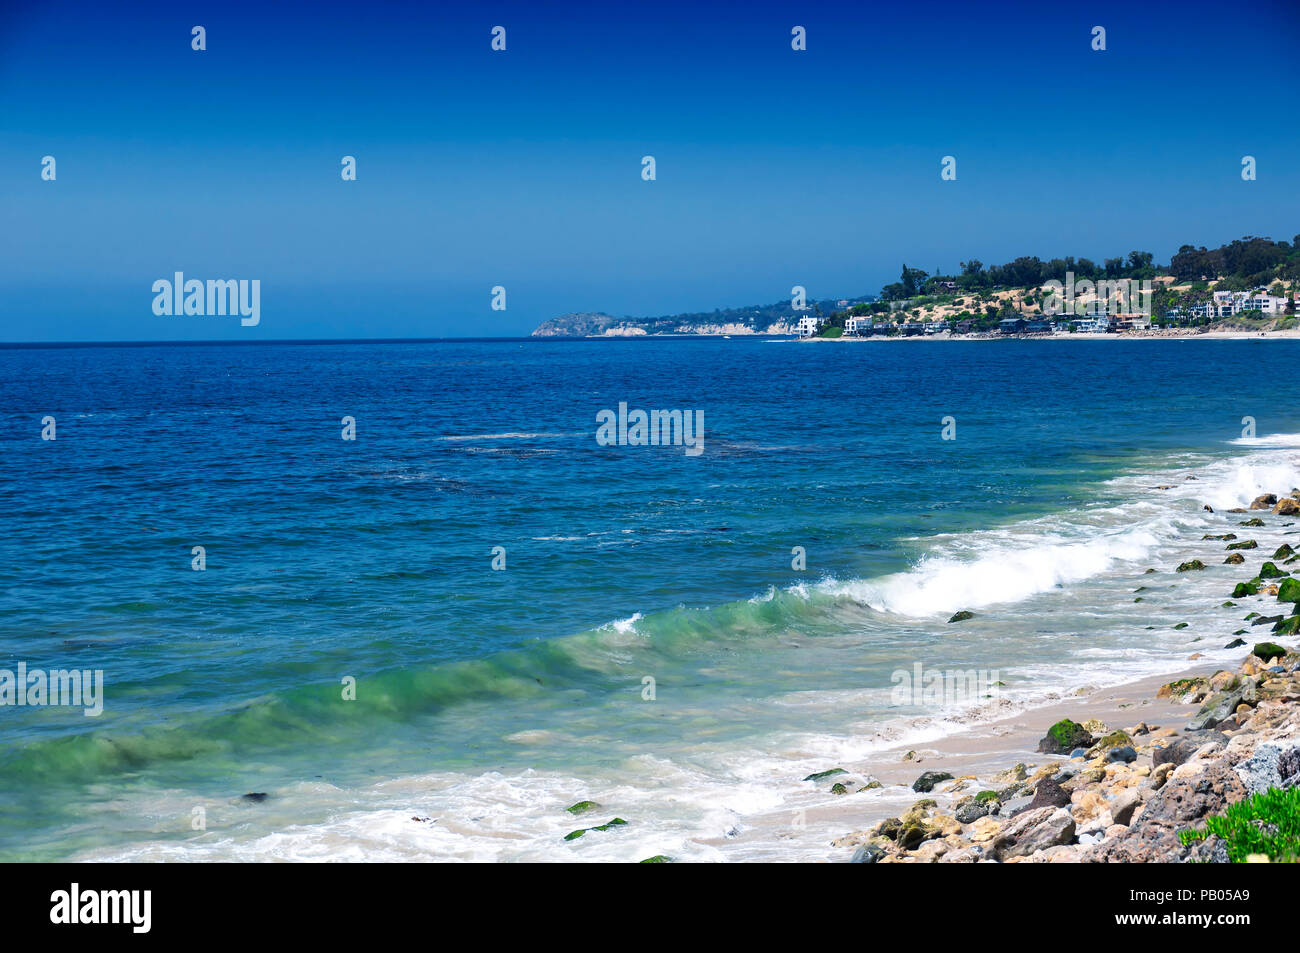 The Pacific Ocean and coastline of california along the PCH near malibu. - Stock Image